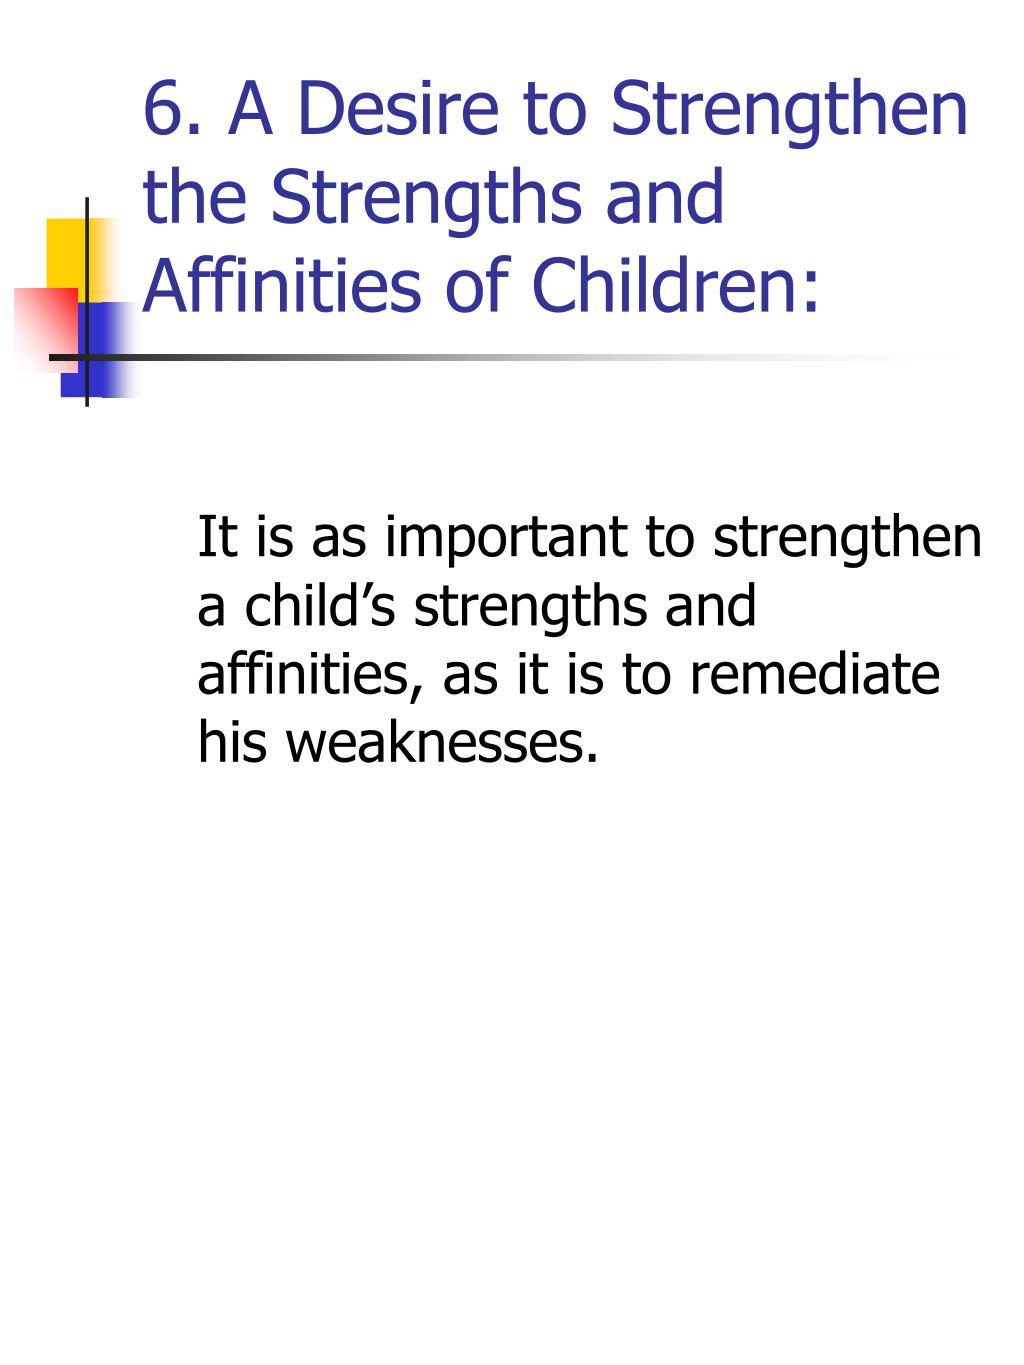 6. A Desire to Strengthen the Strengths and Affinities of Children: